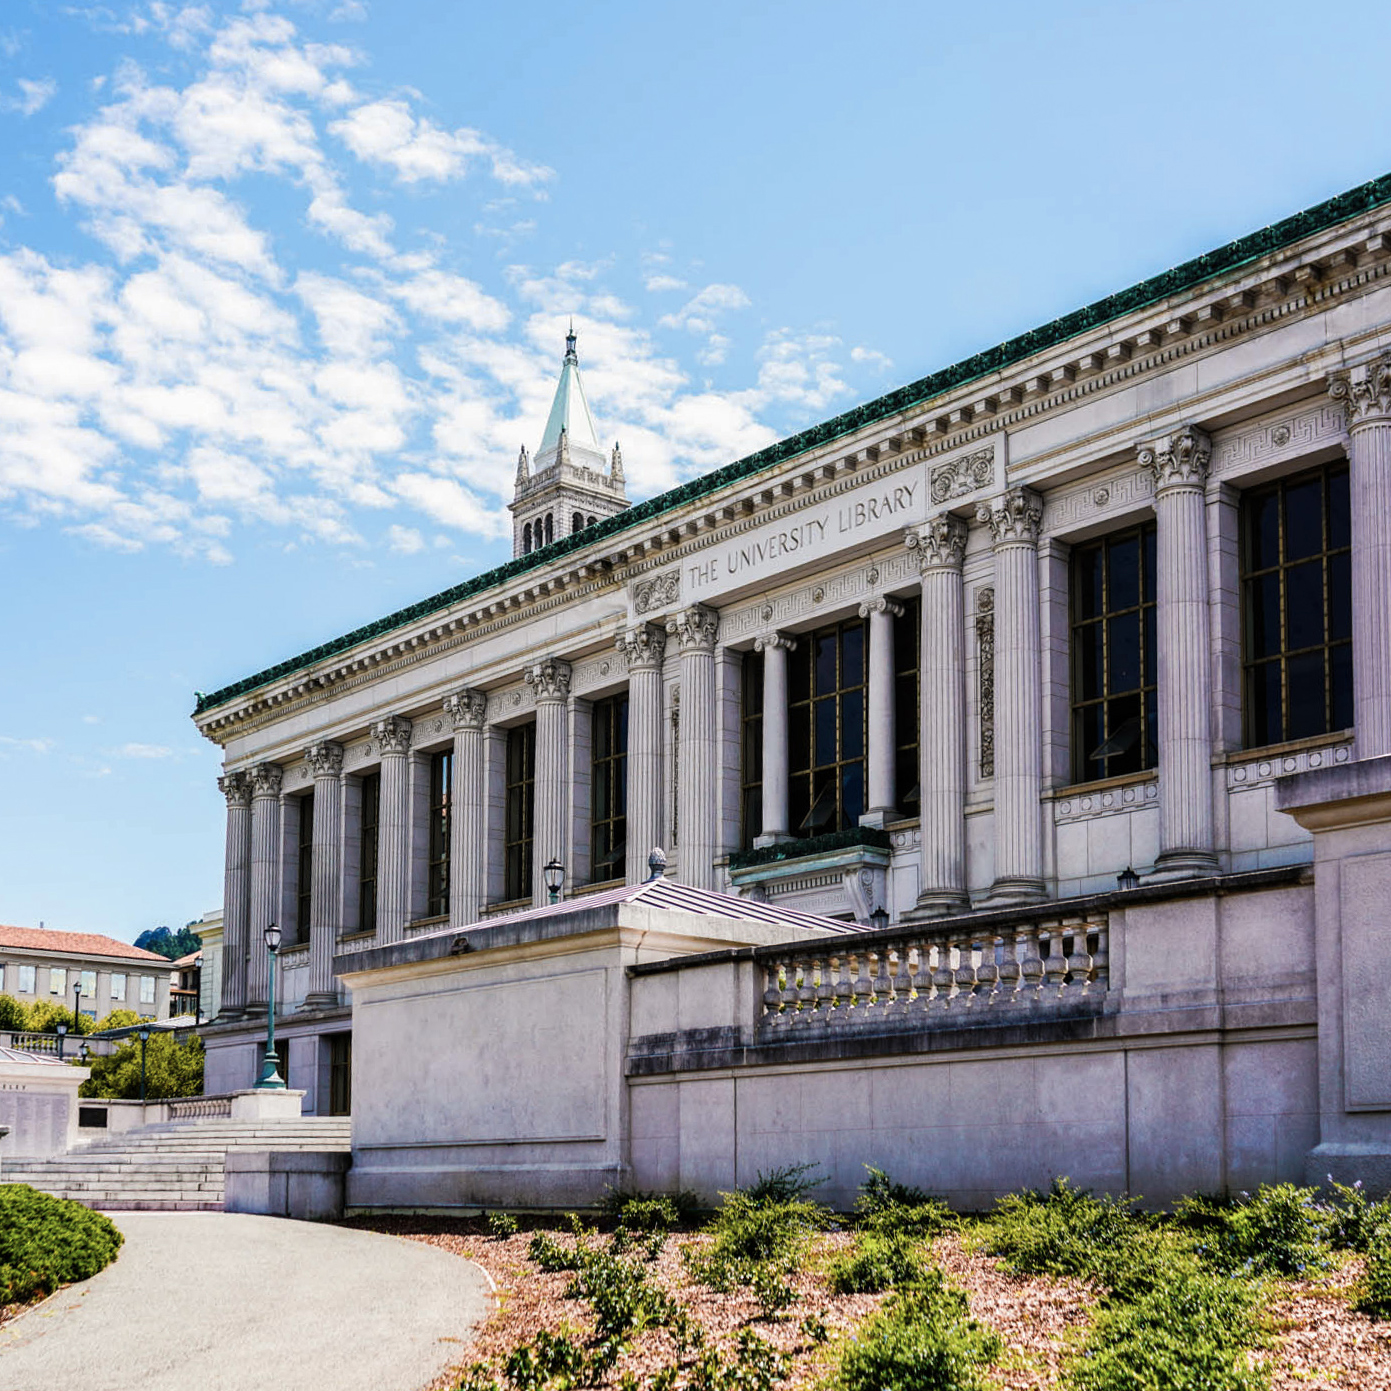 Doe Library and the Campanile on the UC Berkeley campus were photographed on Aug. 9, 2019.